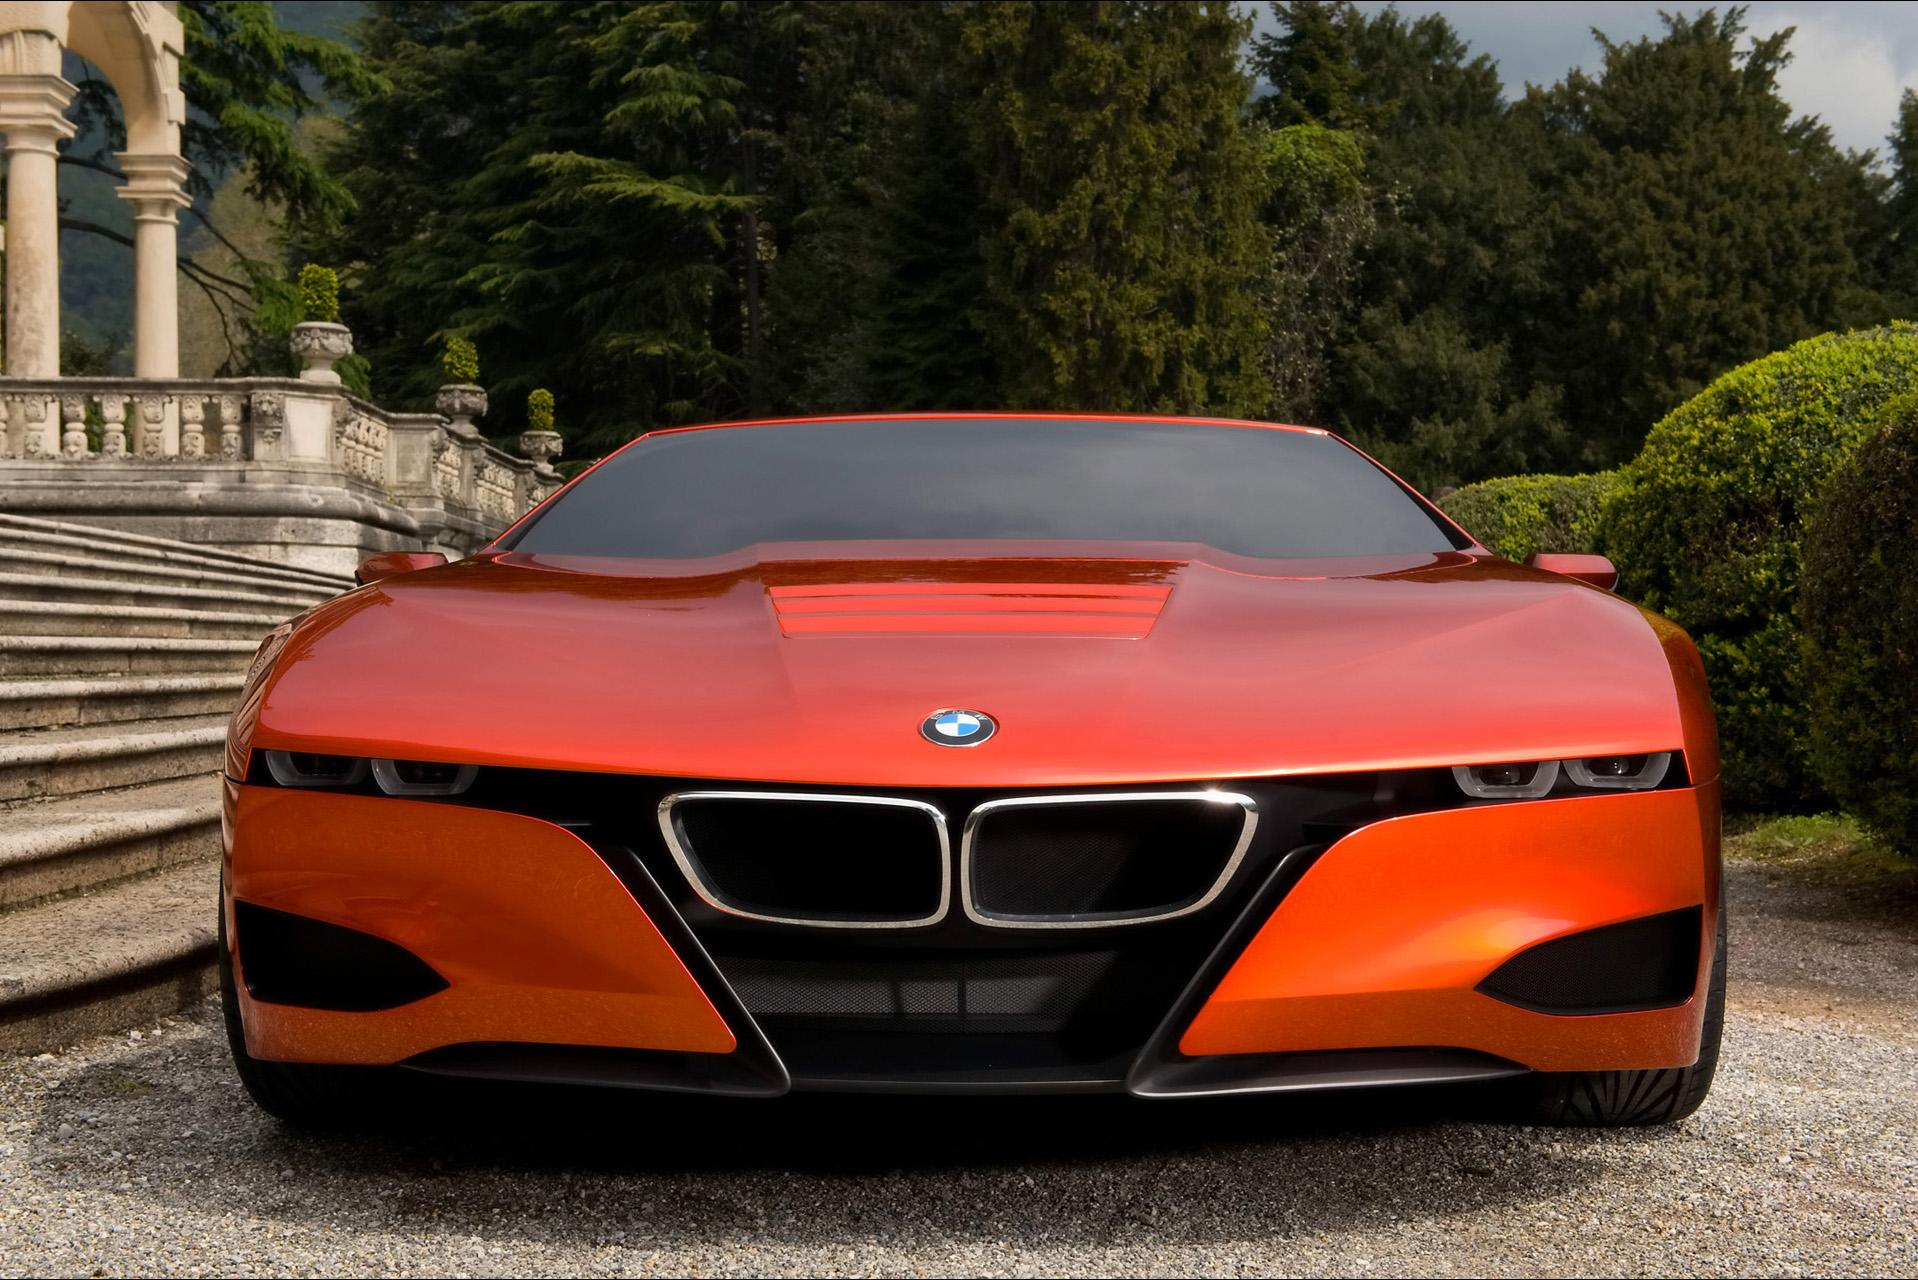 2008 BMW M1 Homage Concept News and Information, Research, and History